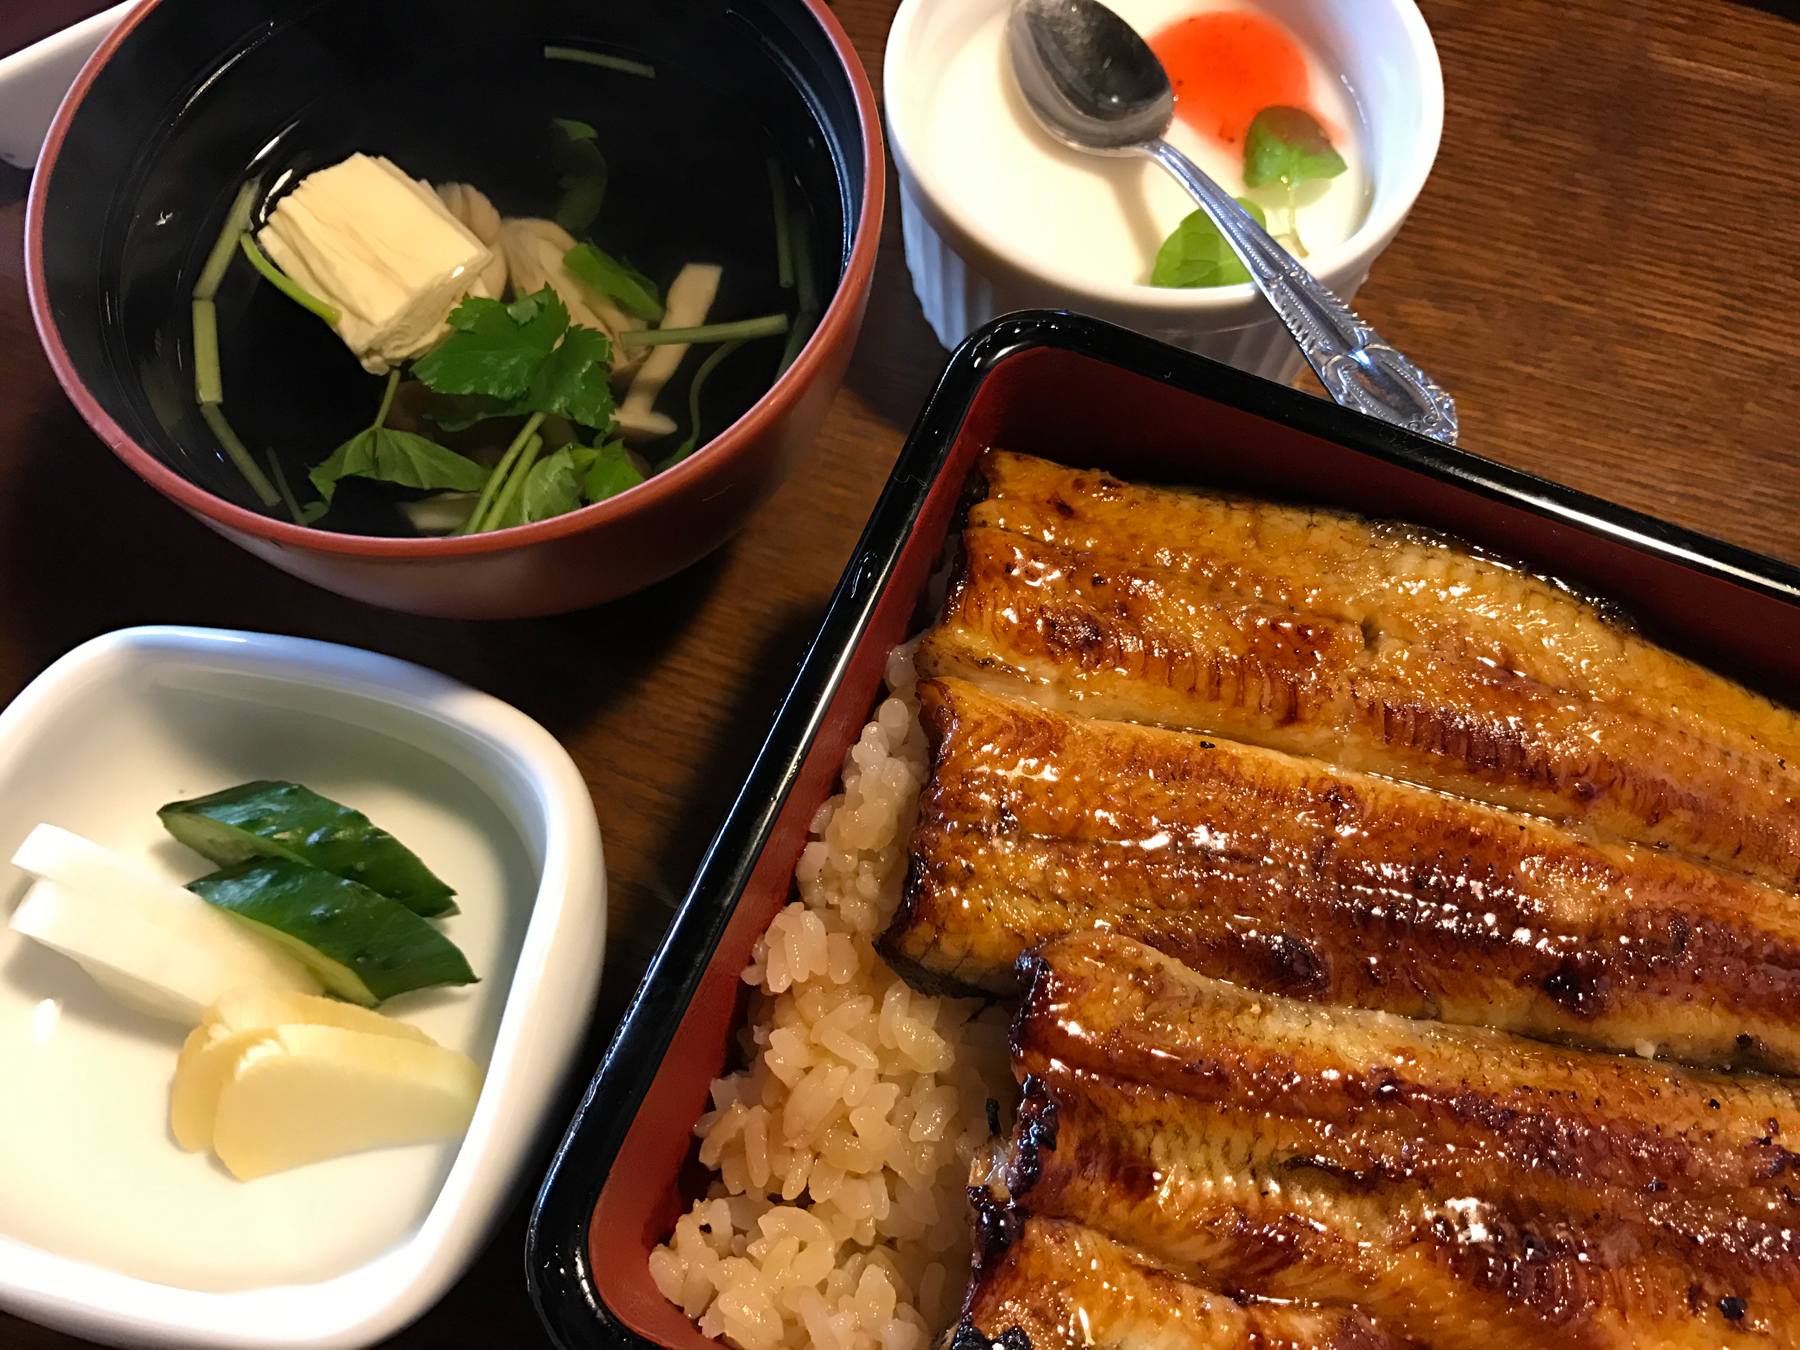 BBQ eel. So good! A little pricy because eels are rarer, but if you're in Japan, please try the freshly grilled eel.